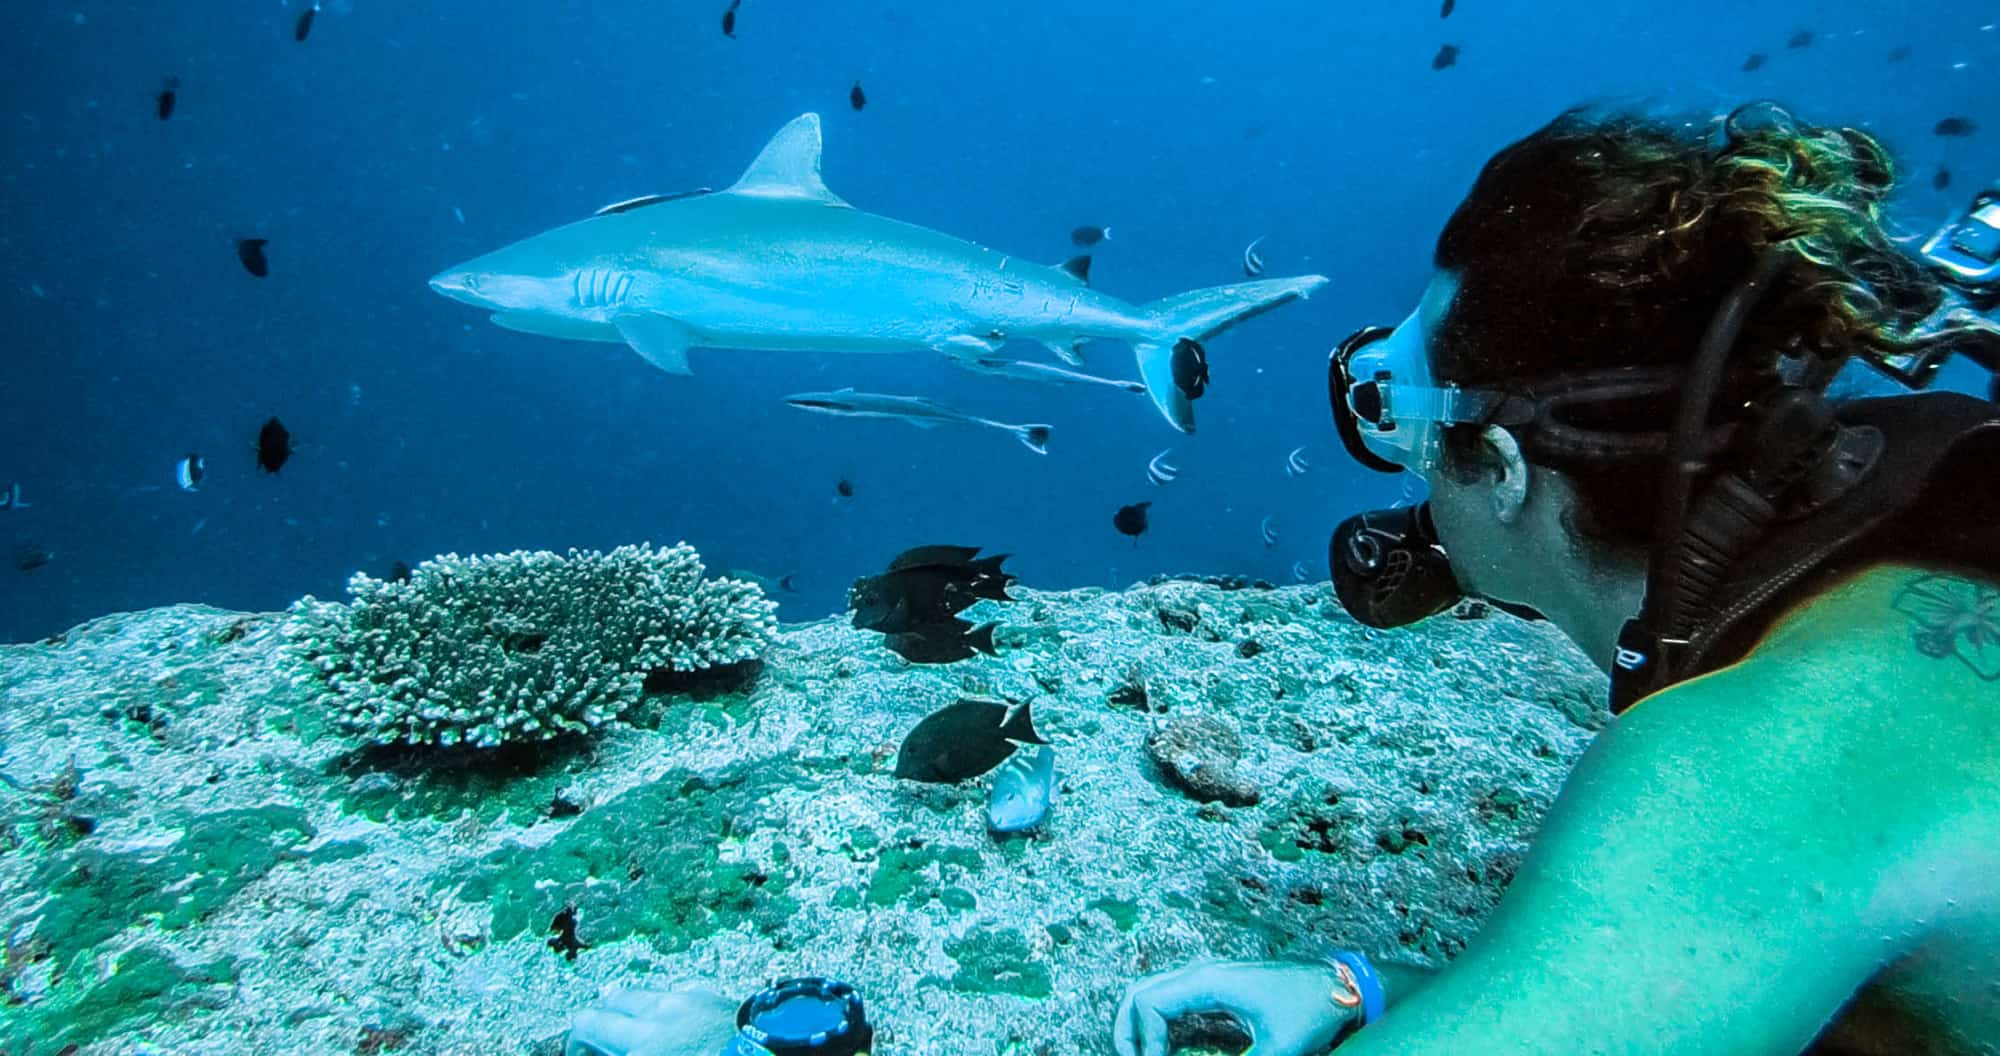 stabiele kwaliteit stopcontact officiële foto's Scuba Diving The Maldives At Cinnamon Ellaidhoo | Stoked For ...